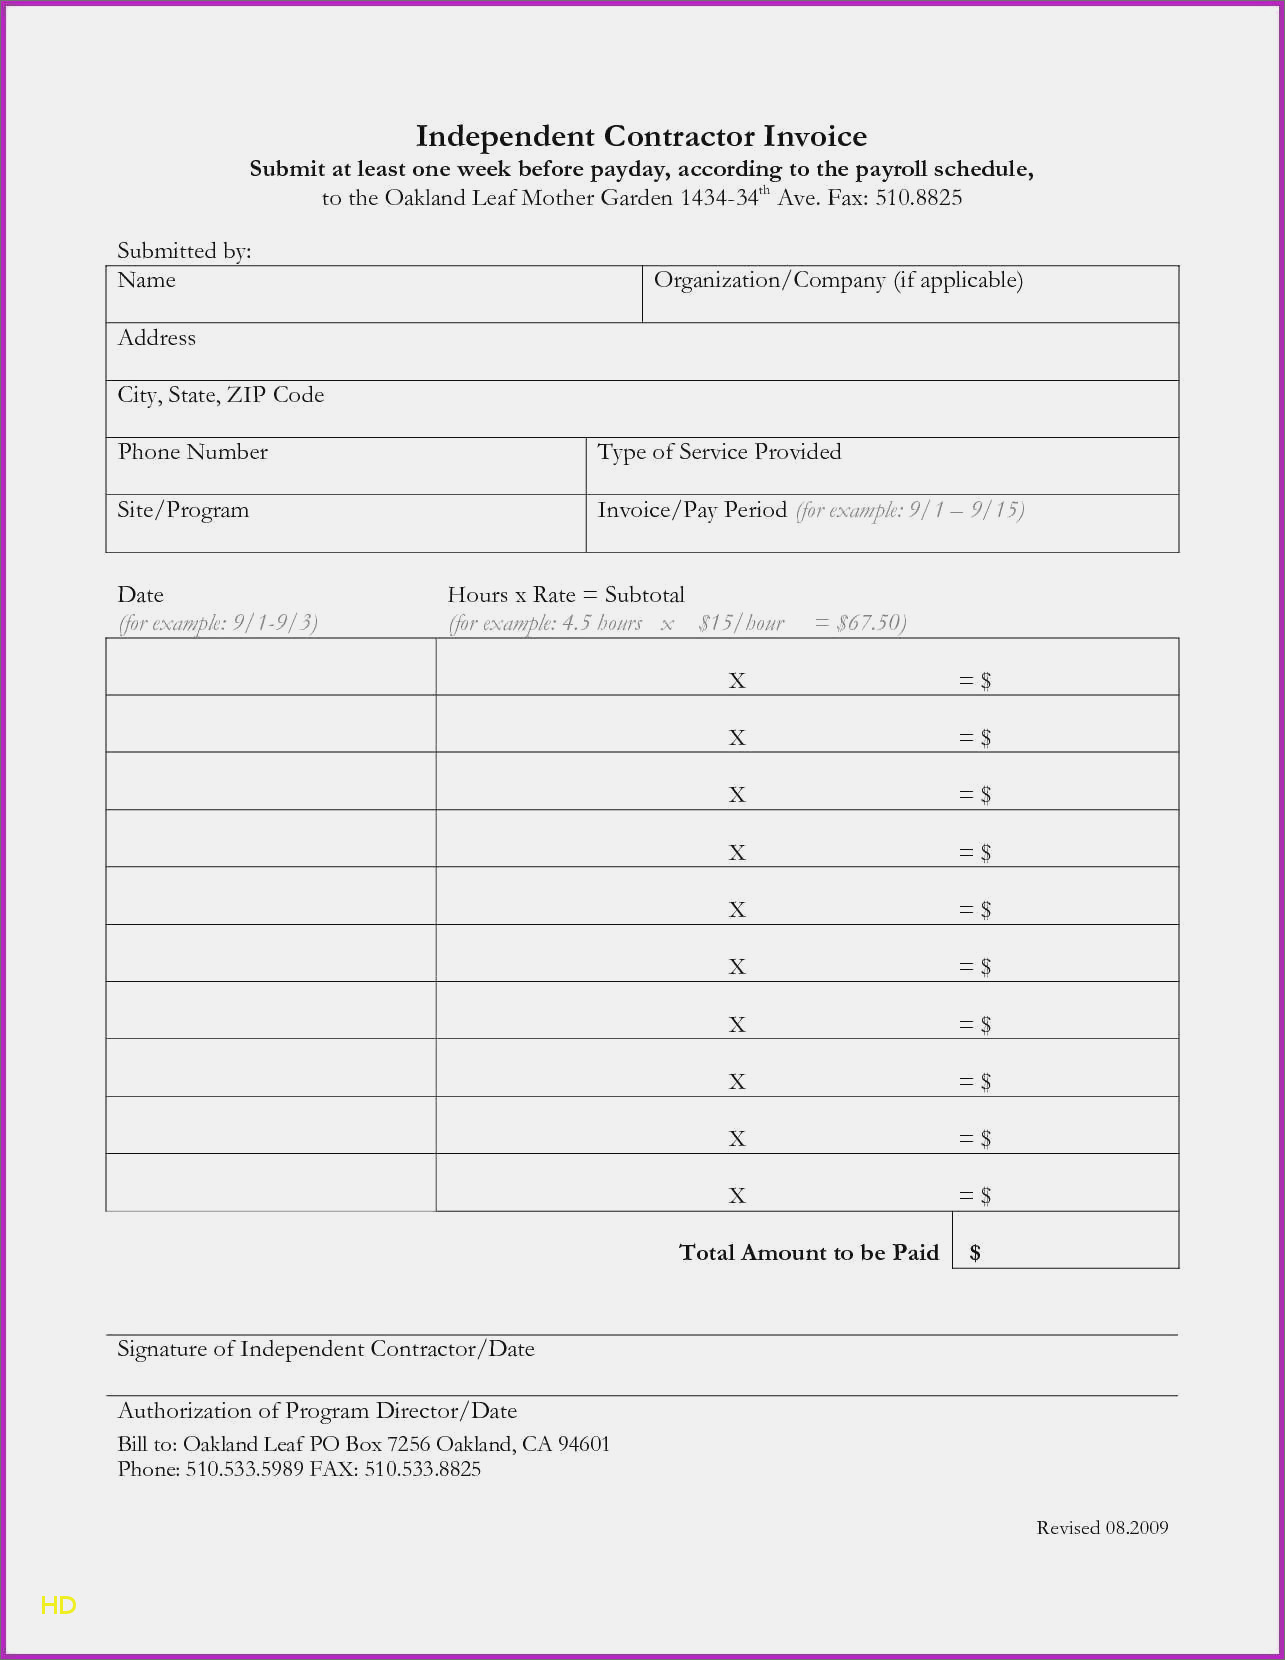 Independent Contractor Invoice Template Electrical Forms